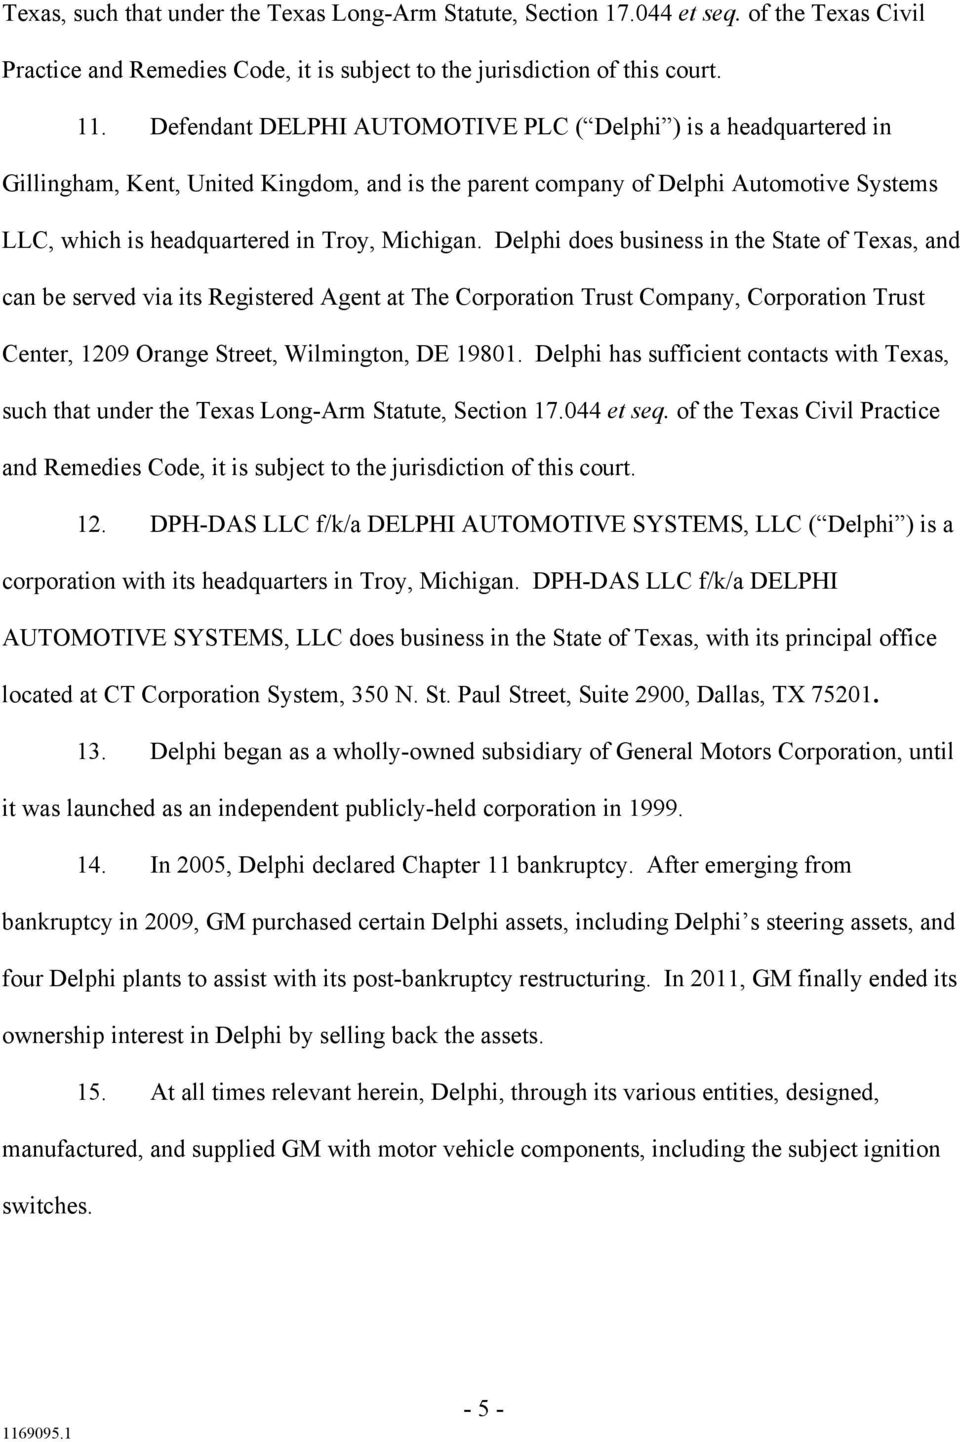 Delphi does business in the State of Texas, and can be served via its Registered Agent at The Corporation Trust Company, Corporation Trust Center, 1209 Orange Street, Wilmington, DE 19801.